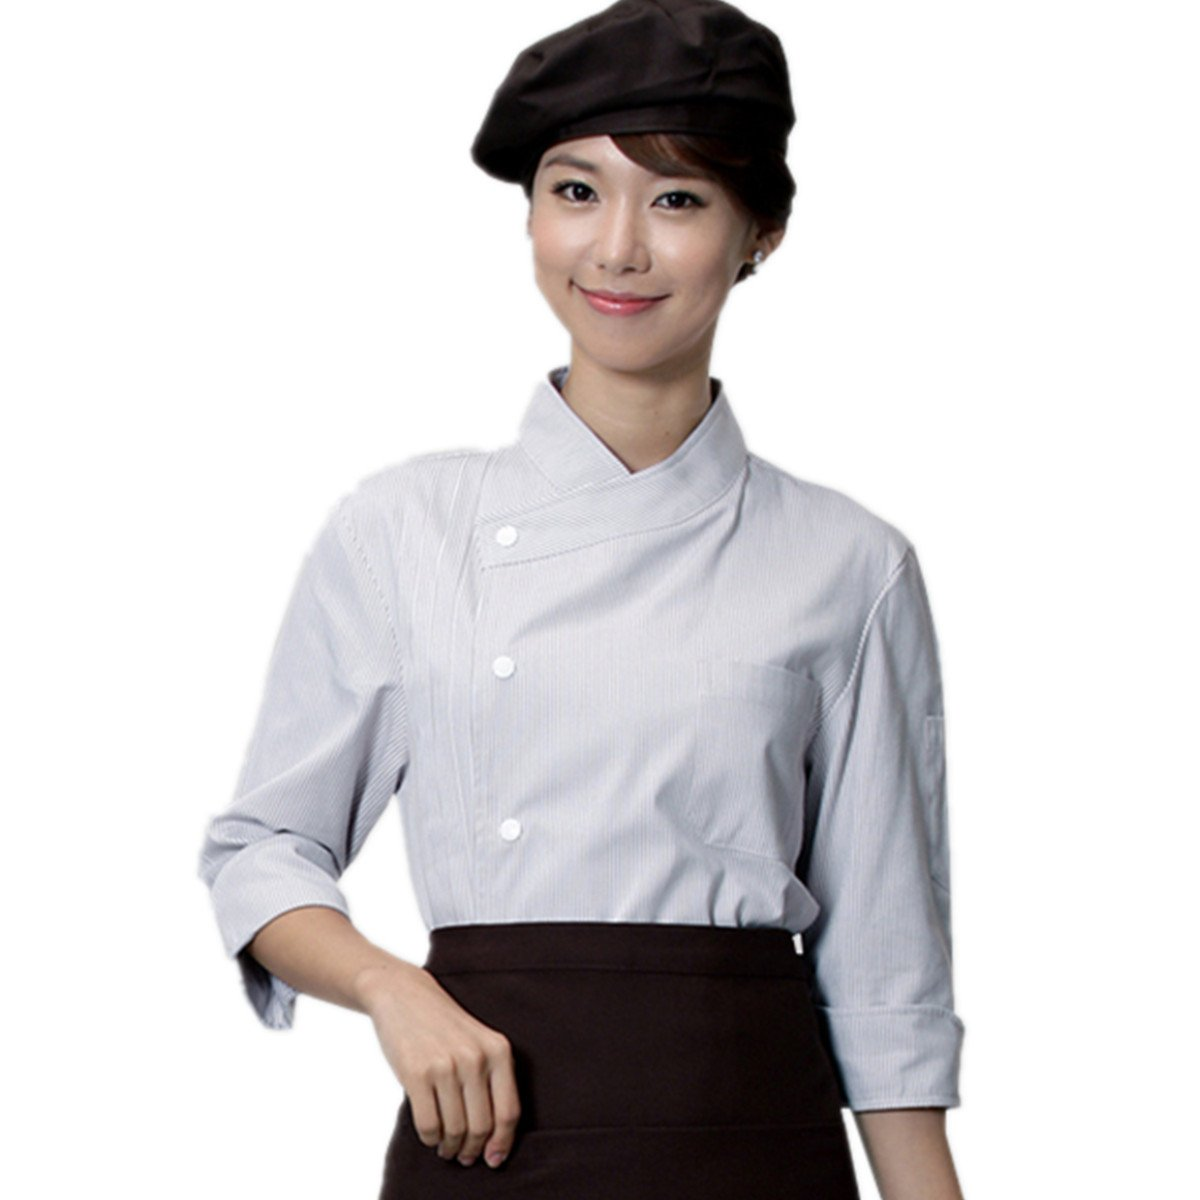 XINFU Chef's Uniform Single Breasted 3/4 Long Sleeve Hotel Western Restaurant Kitchen Chef Jacket